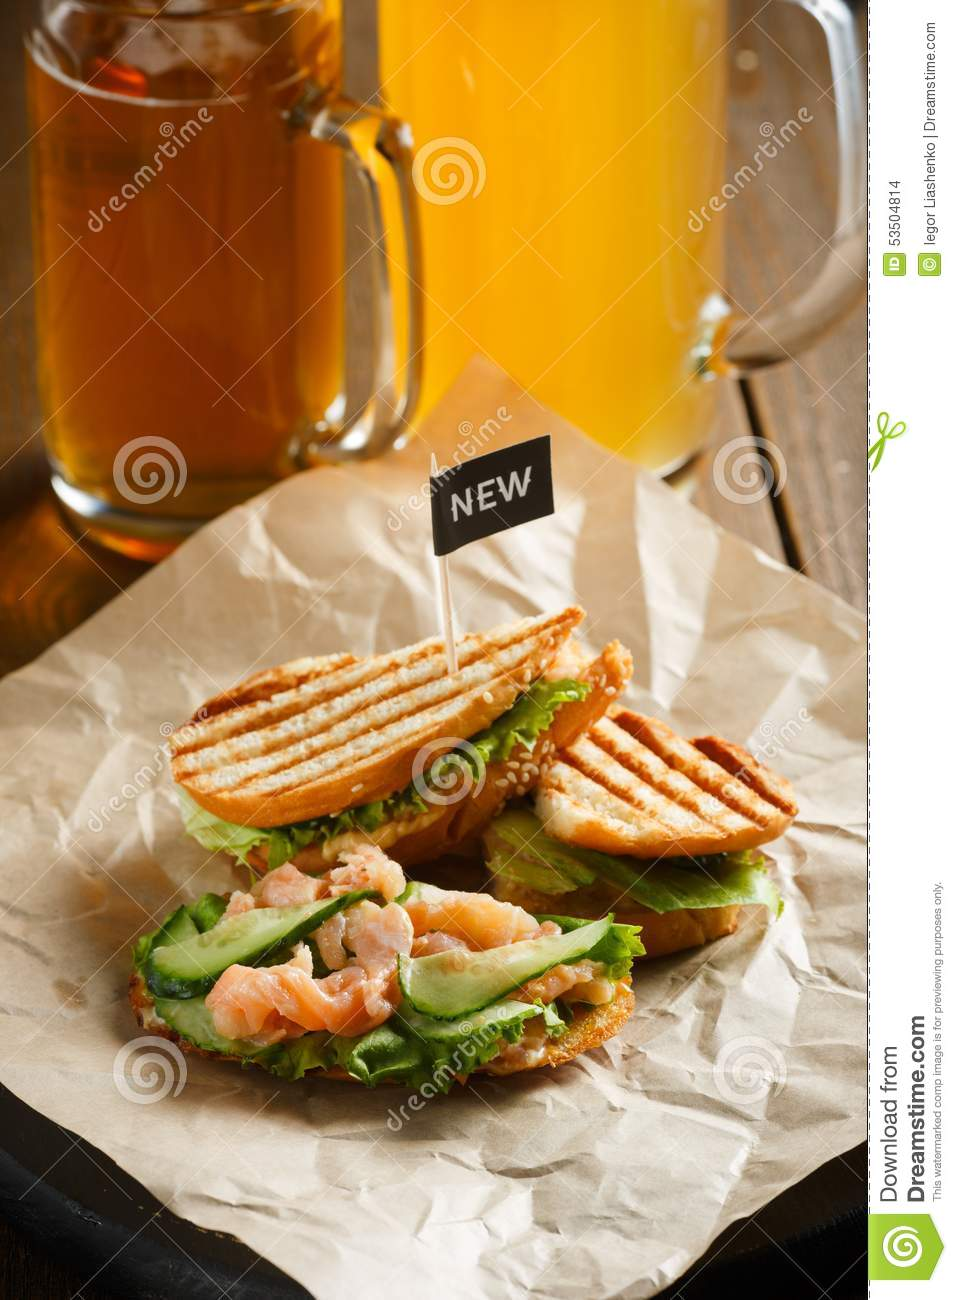 Food stand with fish sandwich stock photo cartoondealer for Best fish sandwich near me